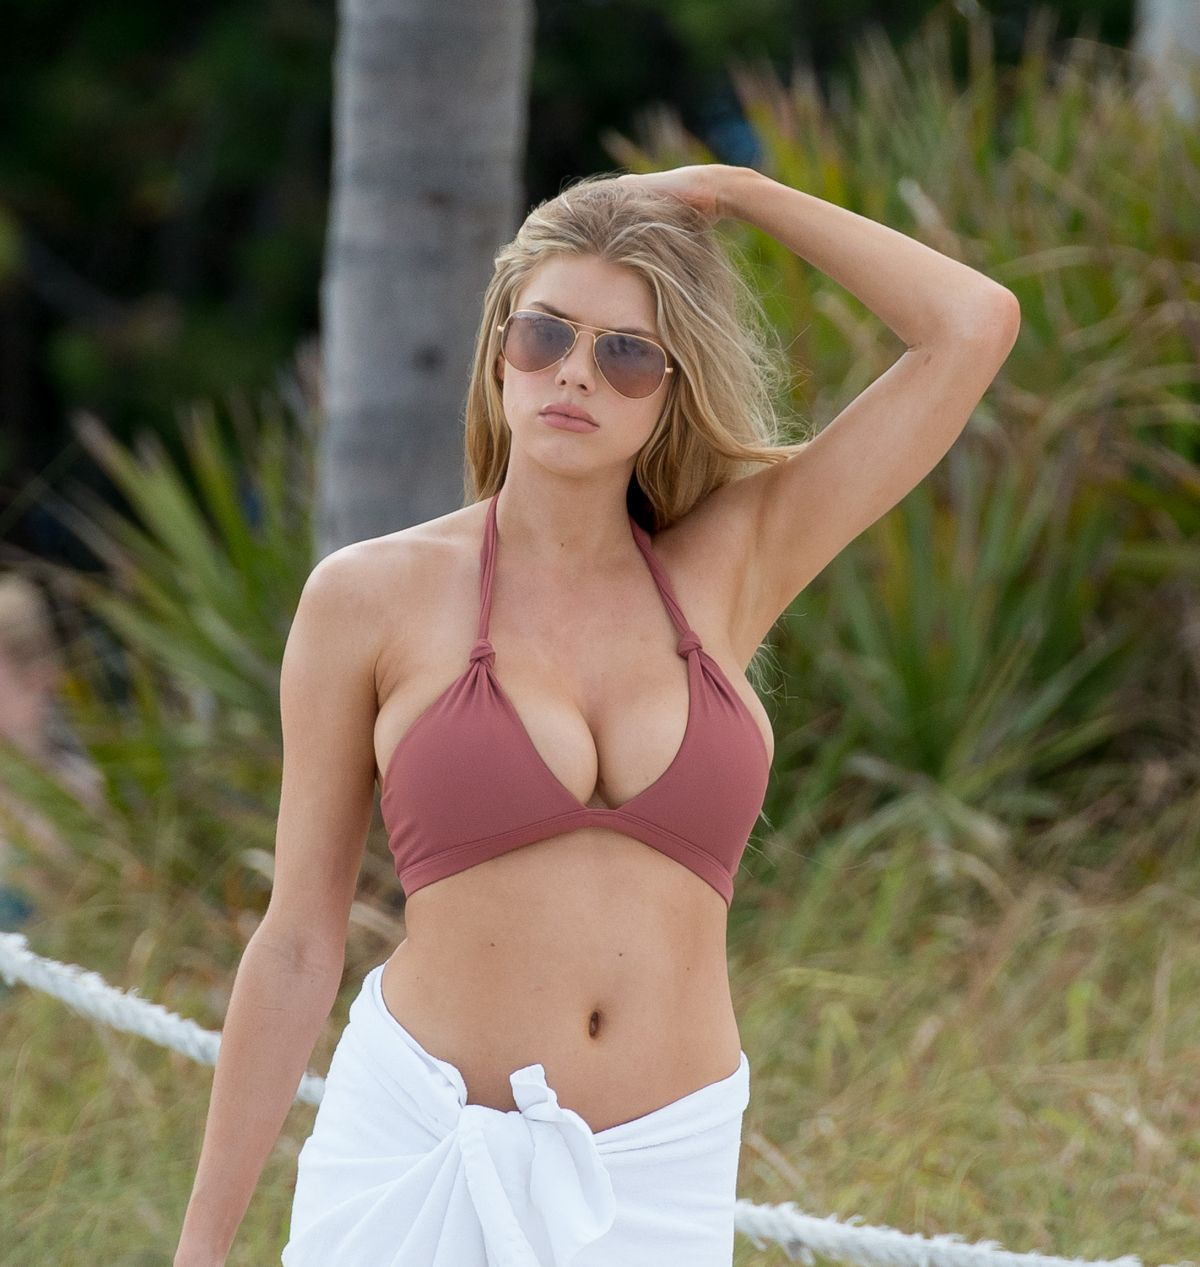 charlotte-mckinney-in-bikini-at-a-beach-in-miami-02-19-2017_32.jpg